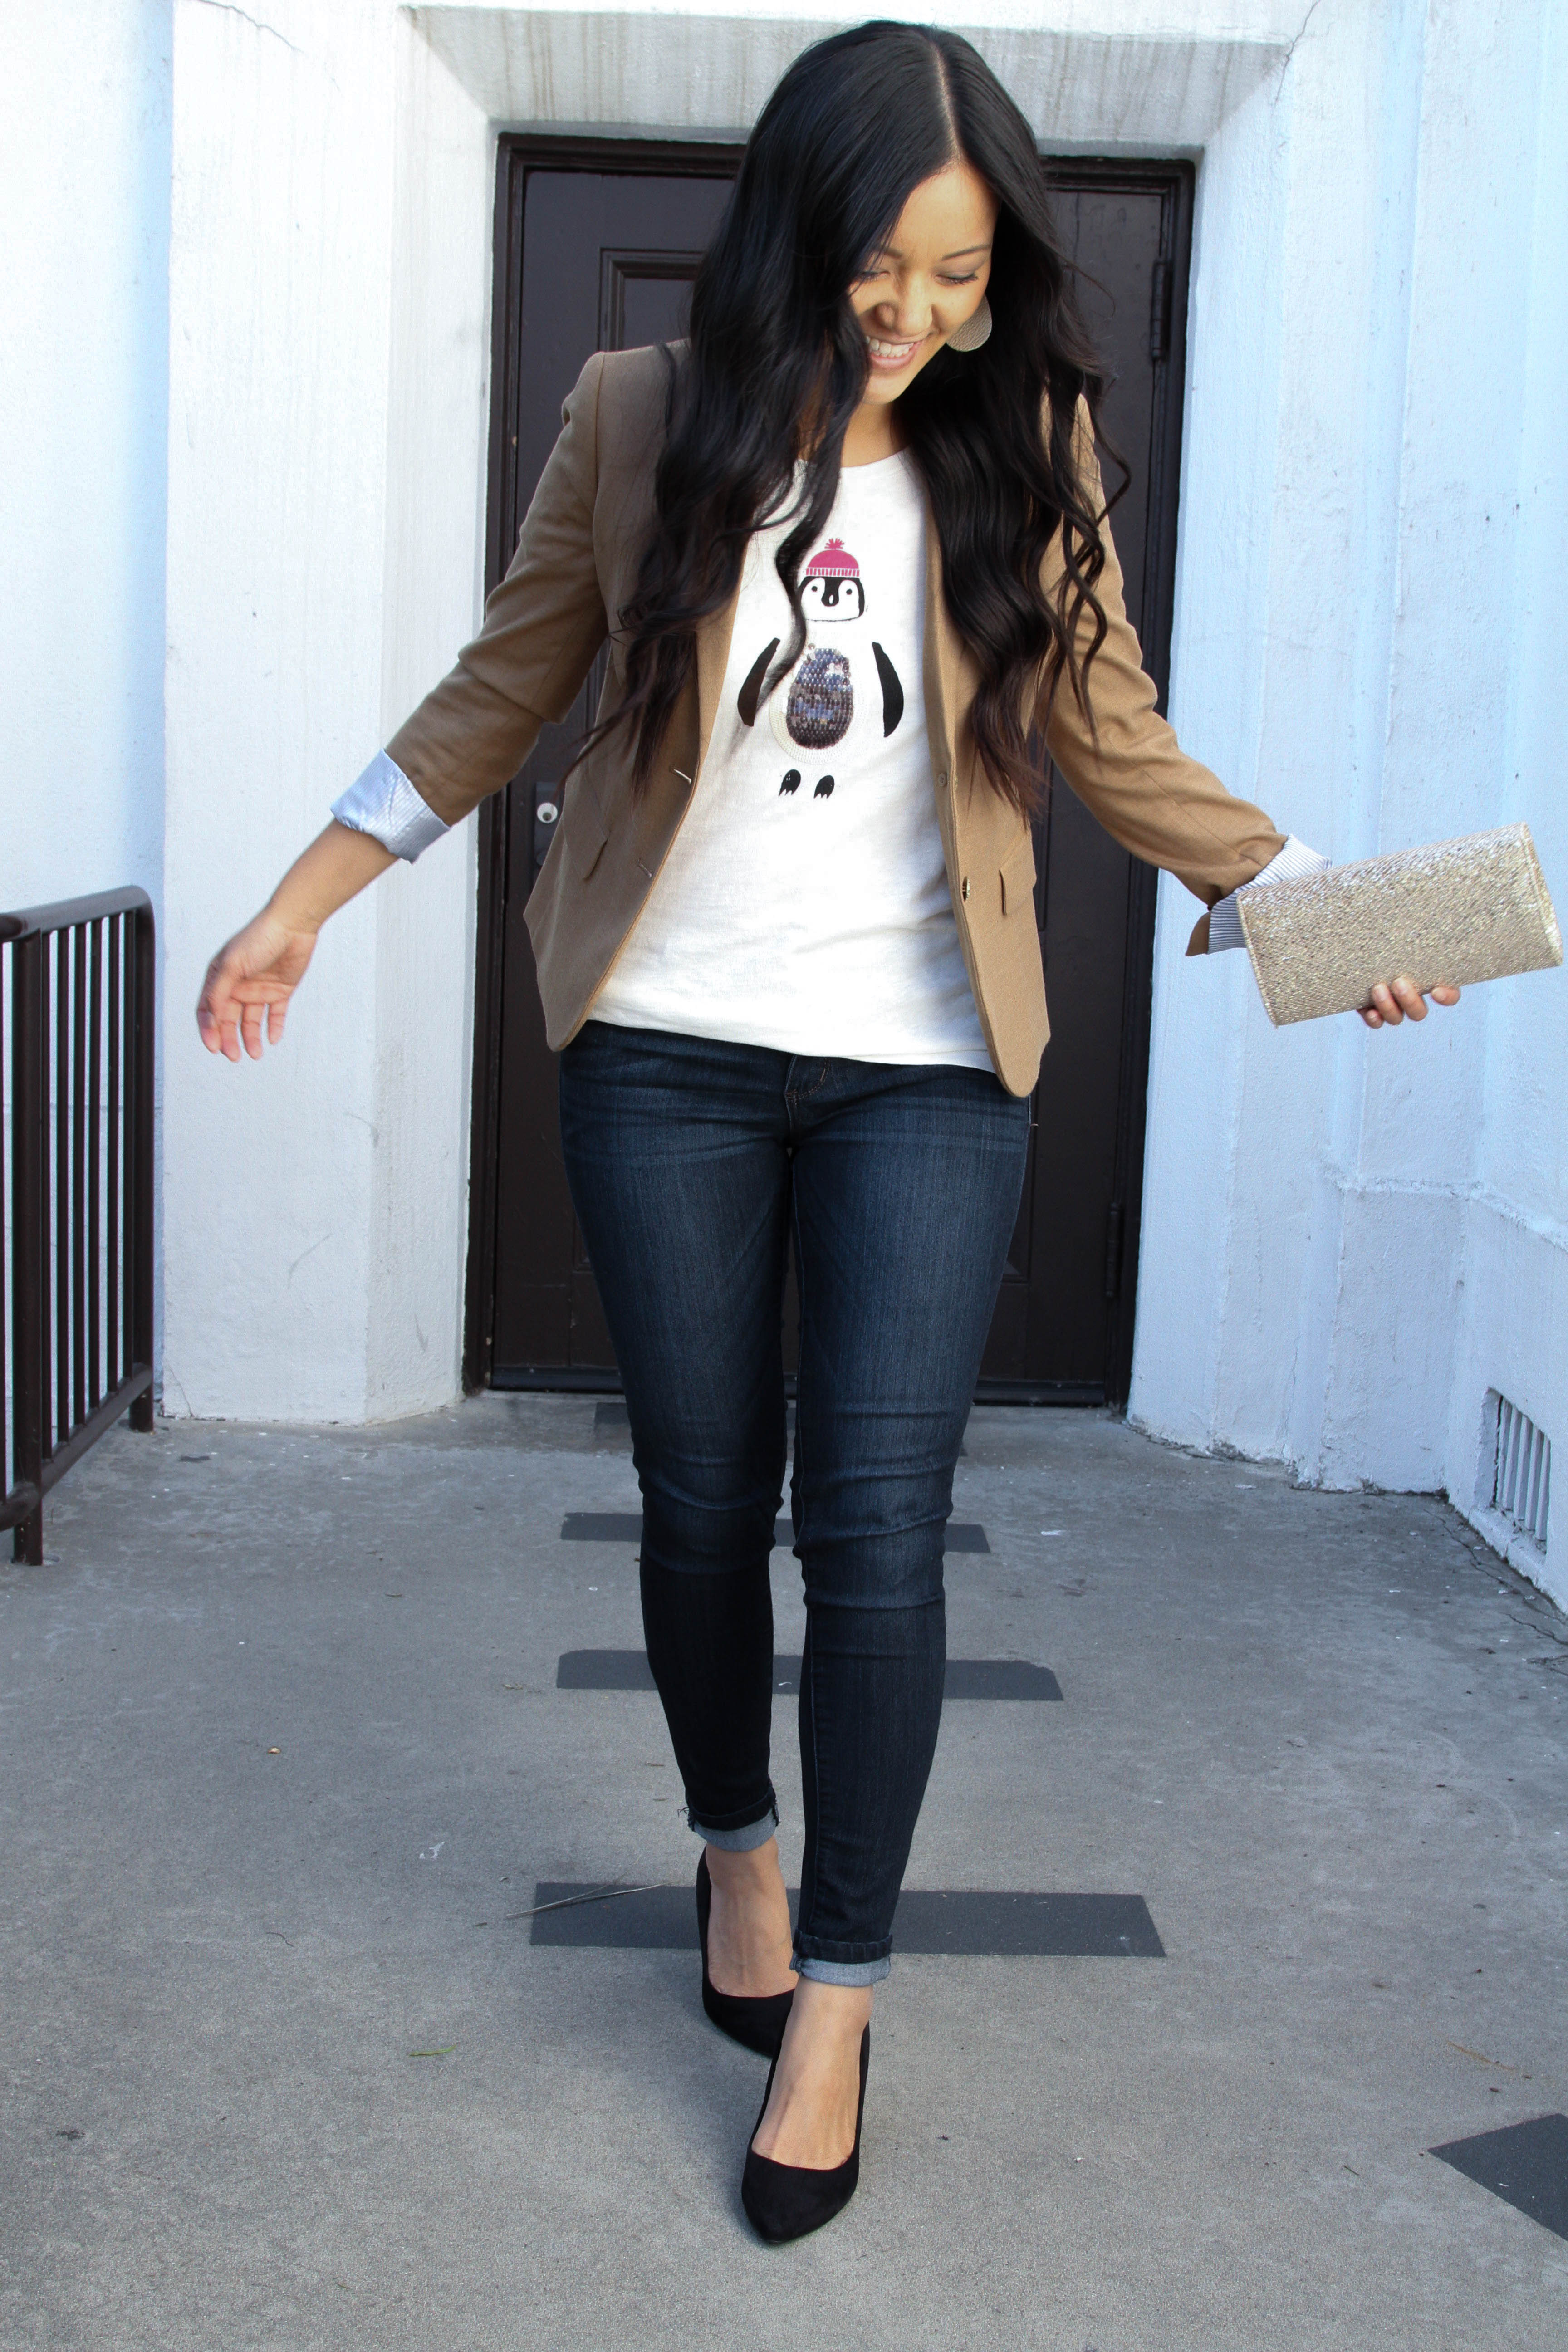 Skinnies + Black Pumps + holiday t-shirt + tan blazer + gold clutch